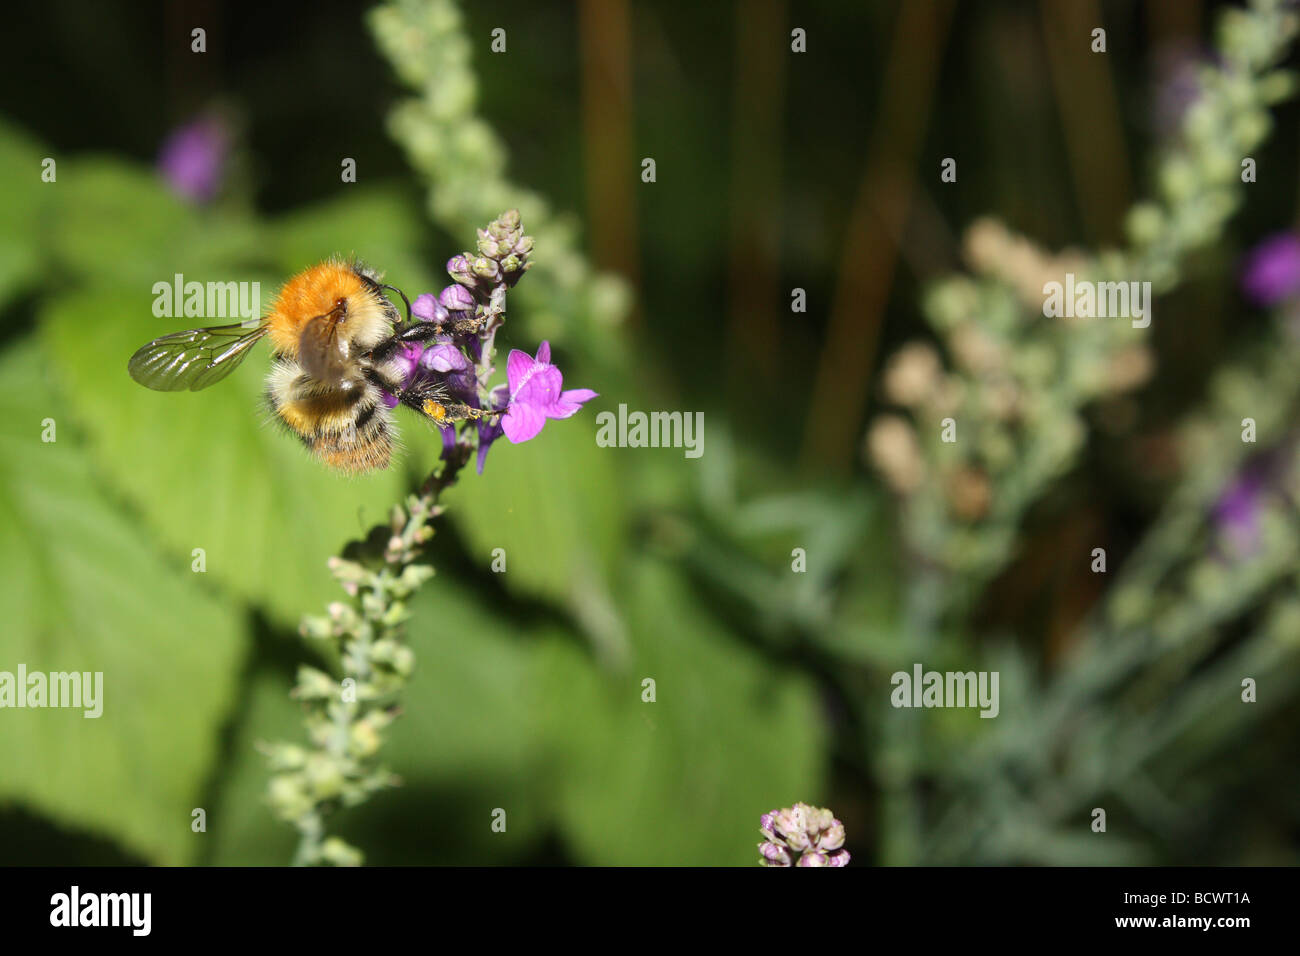 A bee feeding on nectar from a buddleia flower - Stock Image